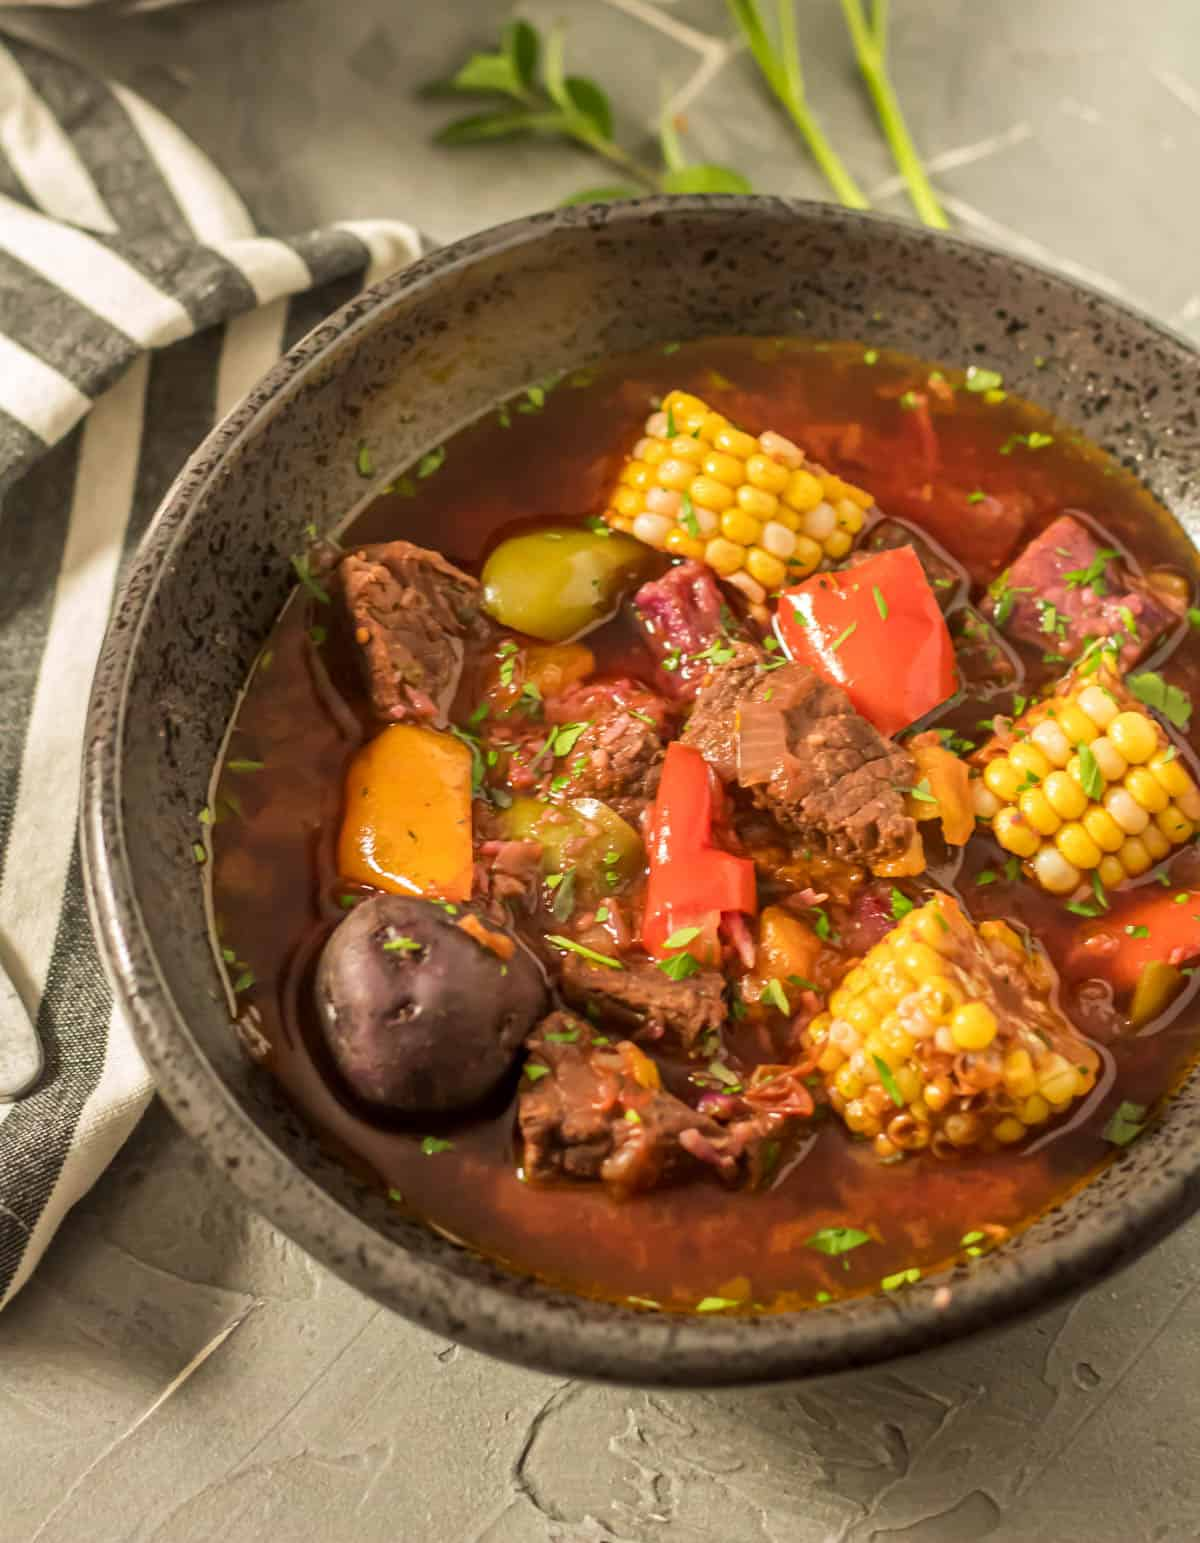 Instant Pot Argentinian Beef Stew (Carbonada Criolla) in a black stoneware bowl with a striped napkin. A close up view.